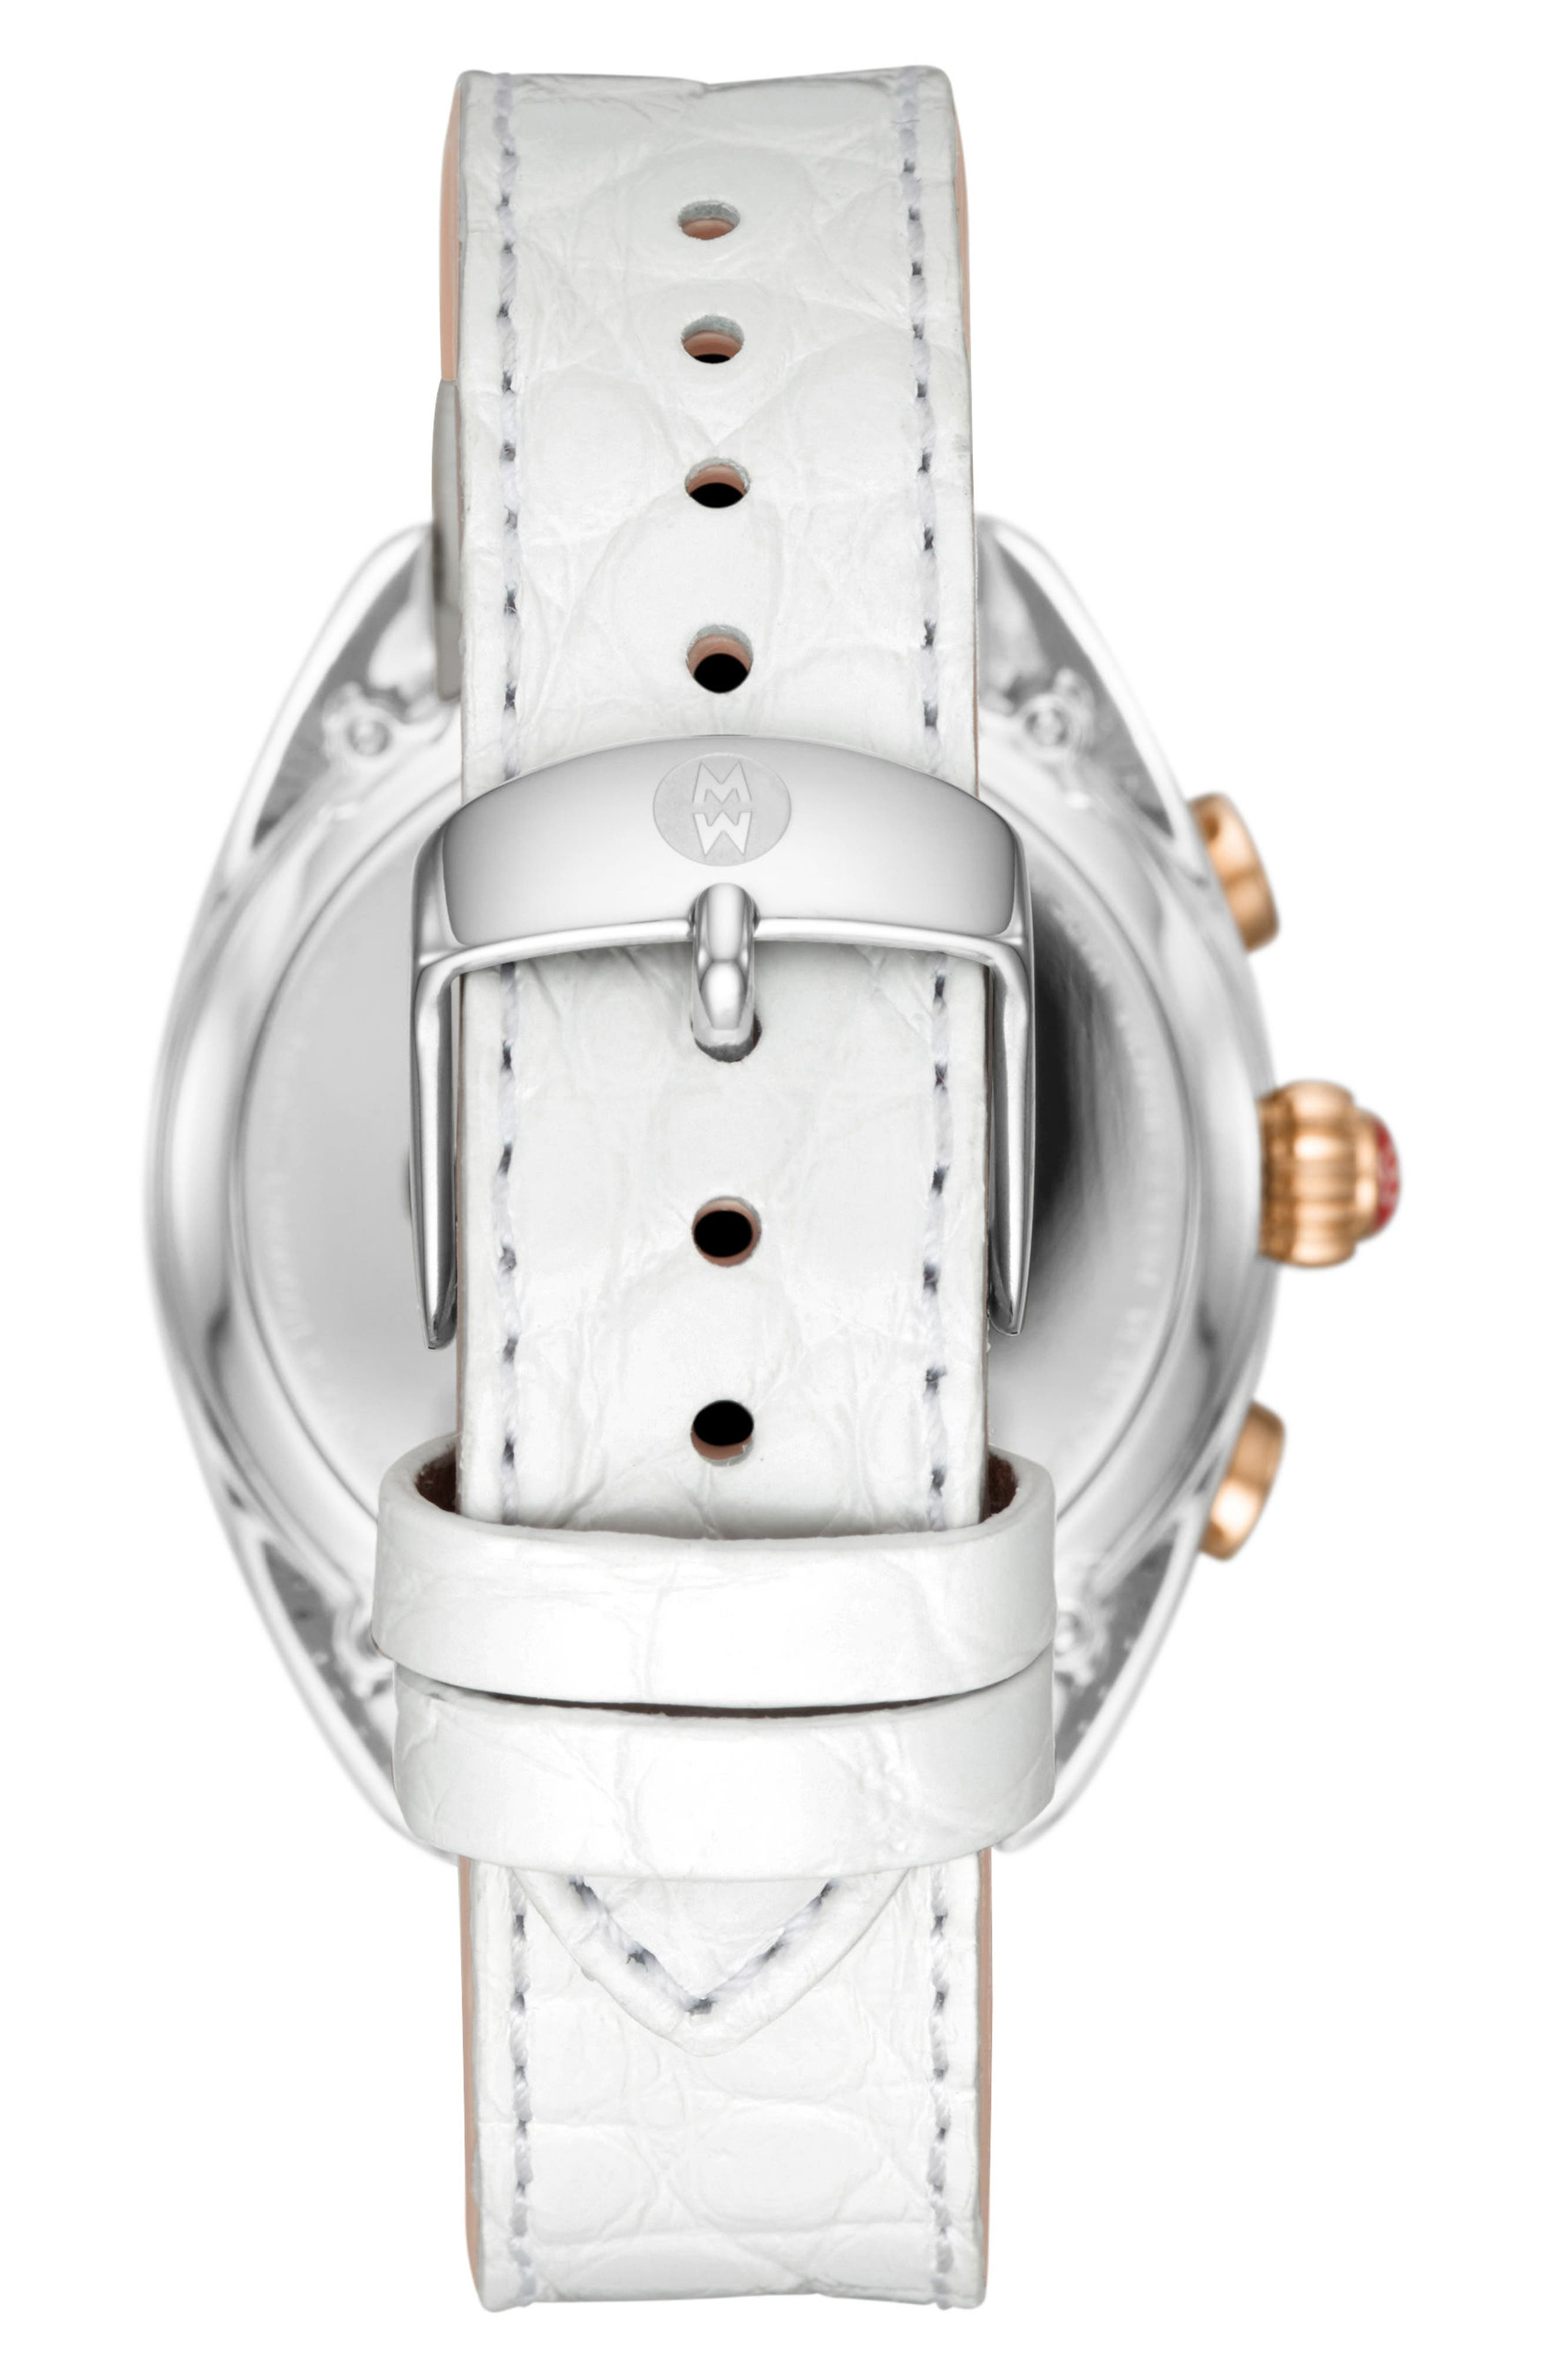 MICHELE, Hybrid Tracker Smart Watch, 38mm, Alternate thumbnail 2, color, WHITE/ SILVER/ ROSE GOLD